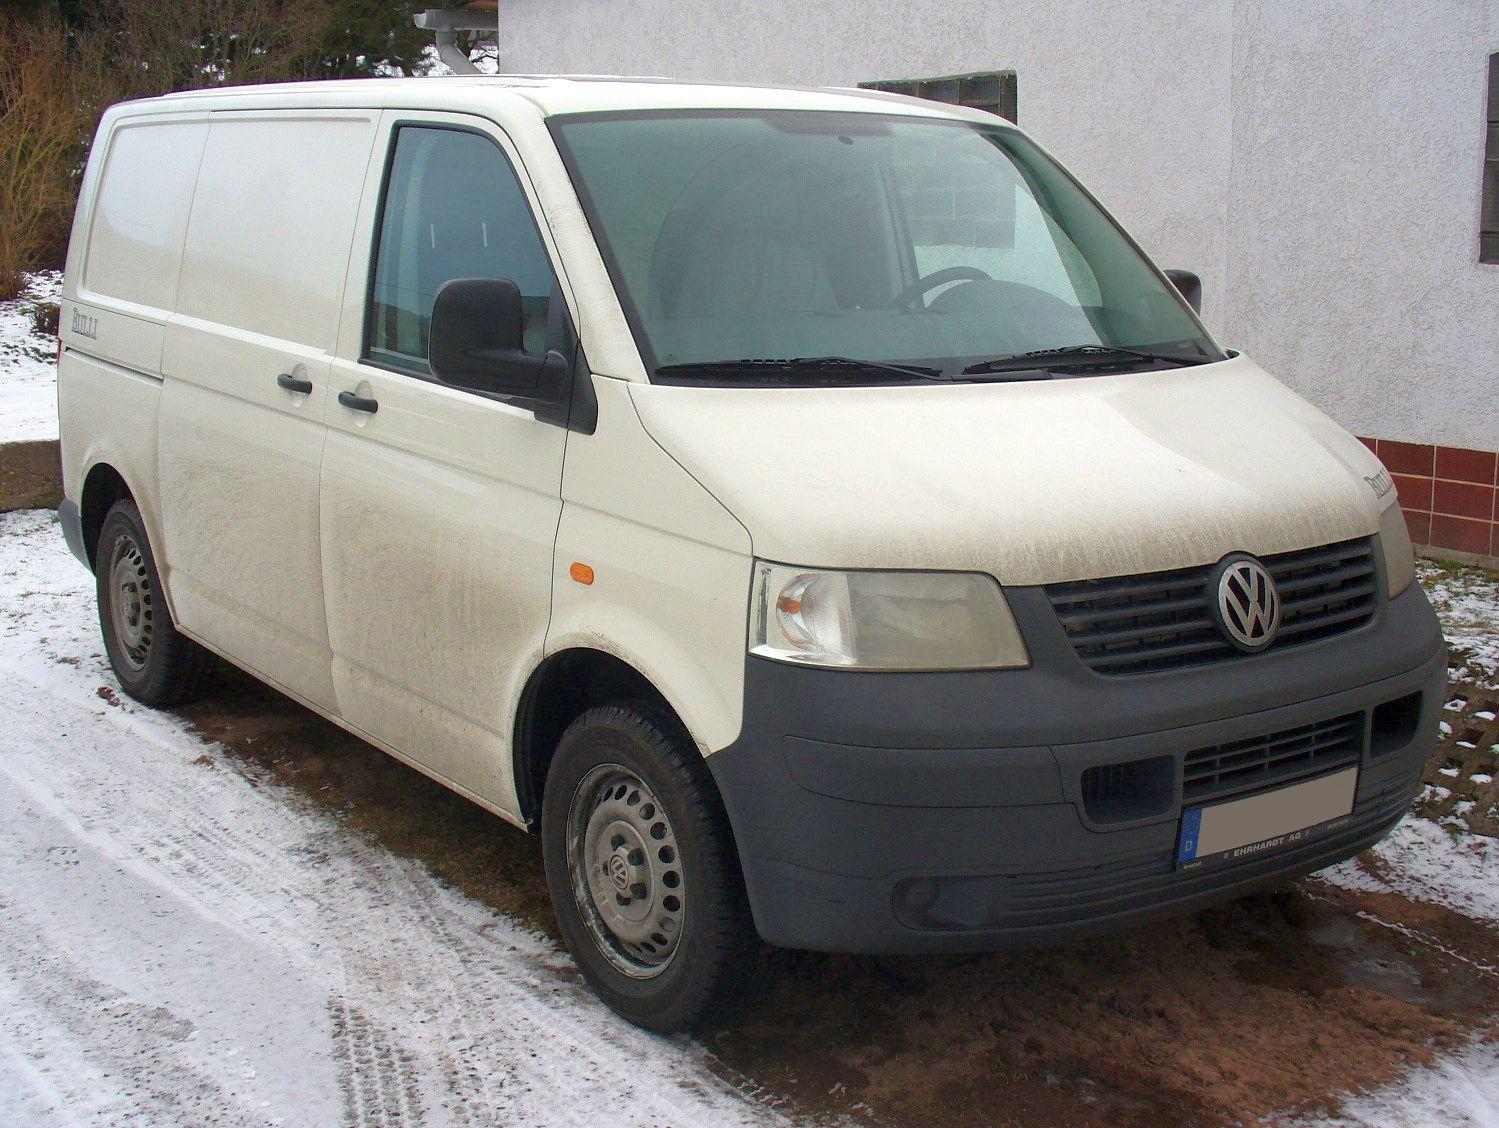 file vw t5 transporter tdi jpg wikimedia commons. Black Bedroom Furniture Sets. Home Design Ideas